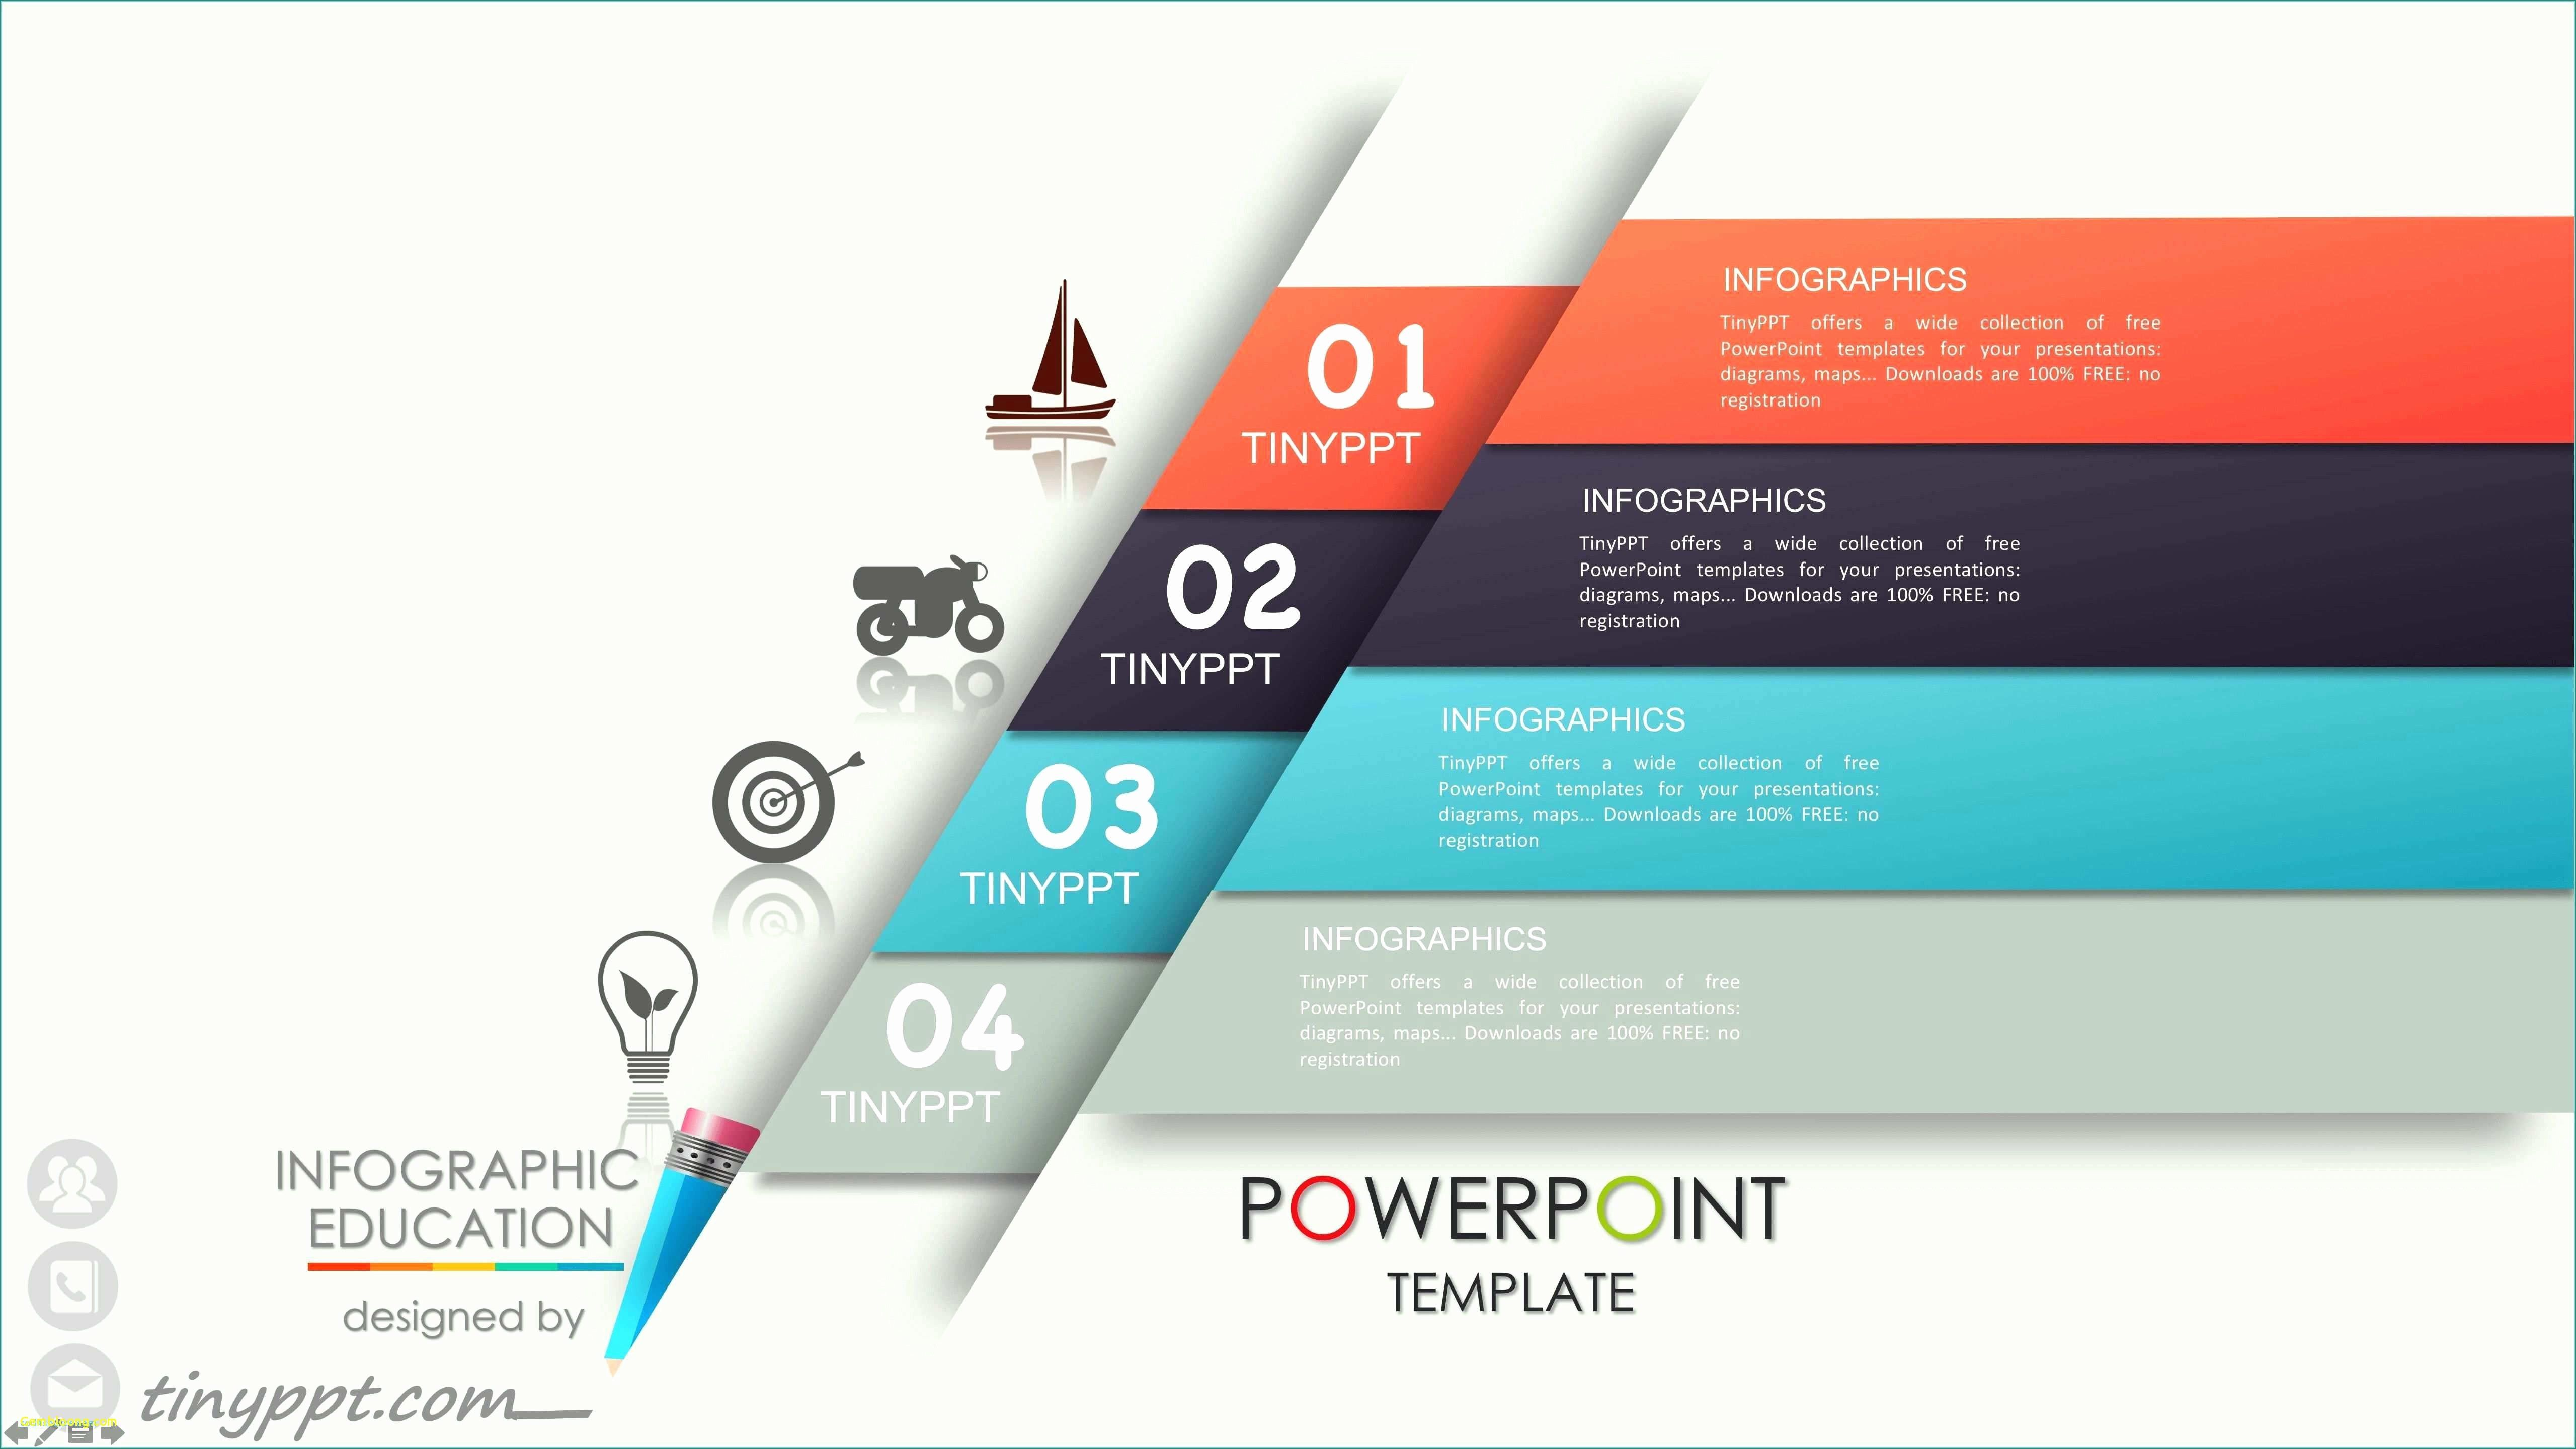 Business Card Template Jpg Free Powerpoint Business Card Templates 3d Powerpo In 2020 Powerpoint Background Templates Presentation Template Free Infographic Powerpoint